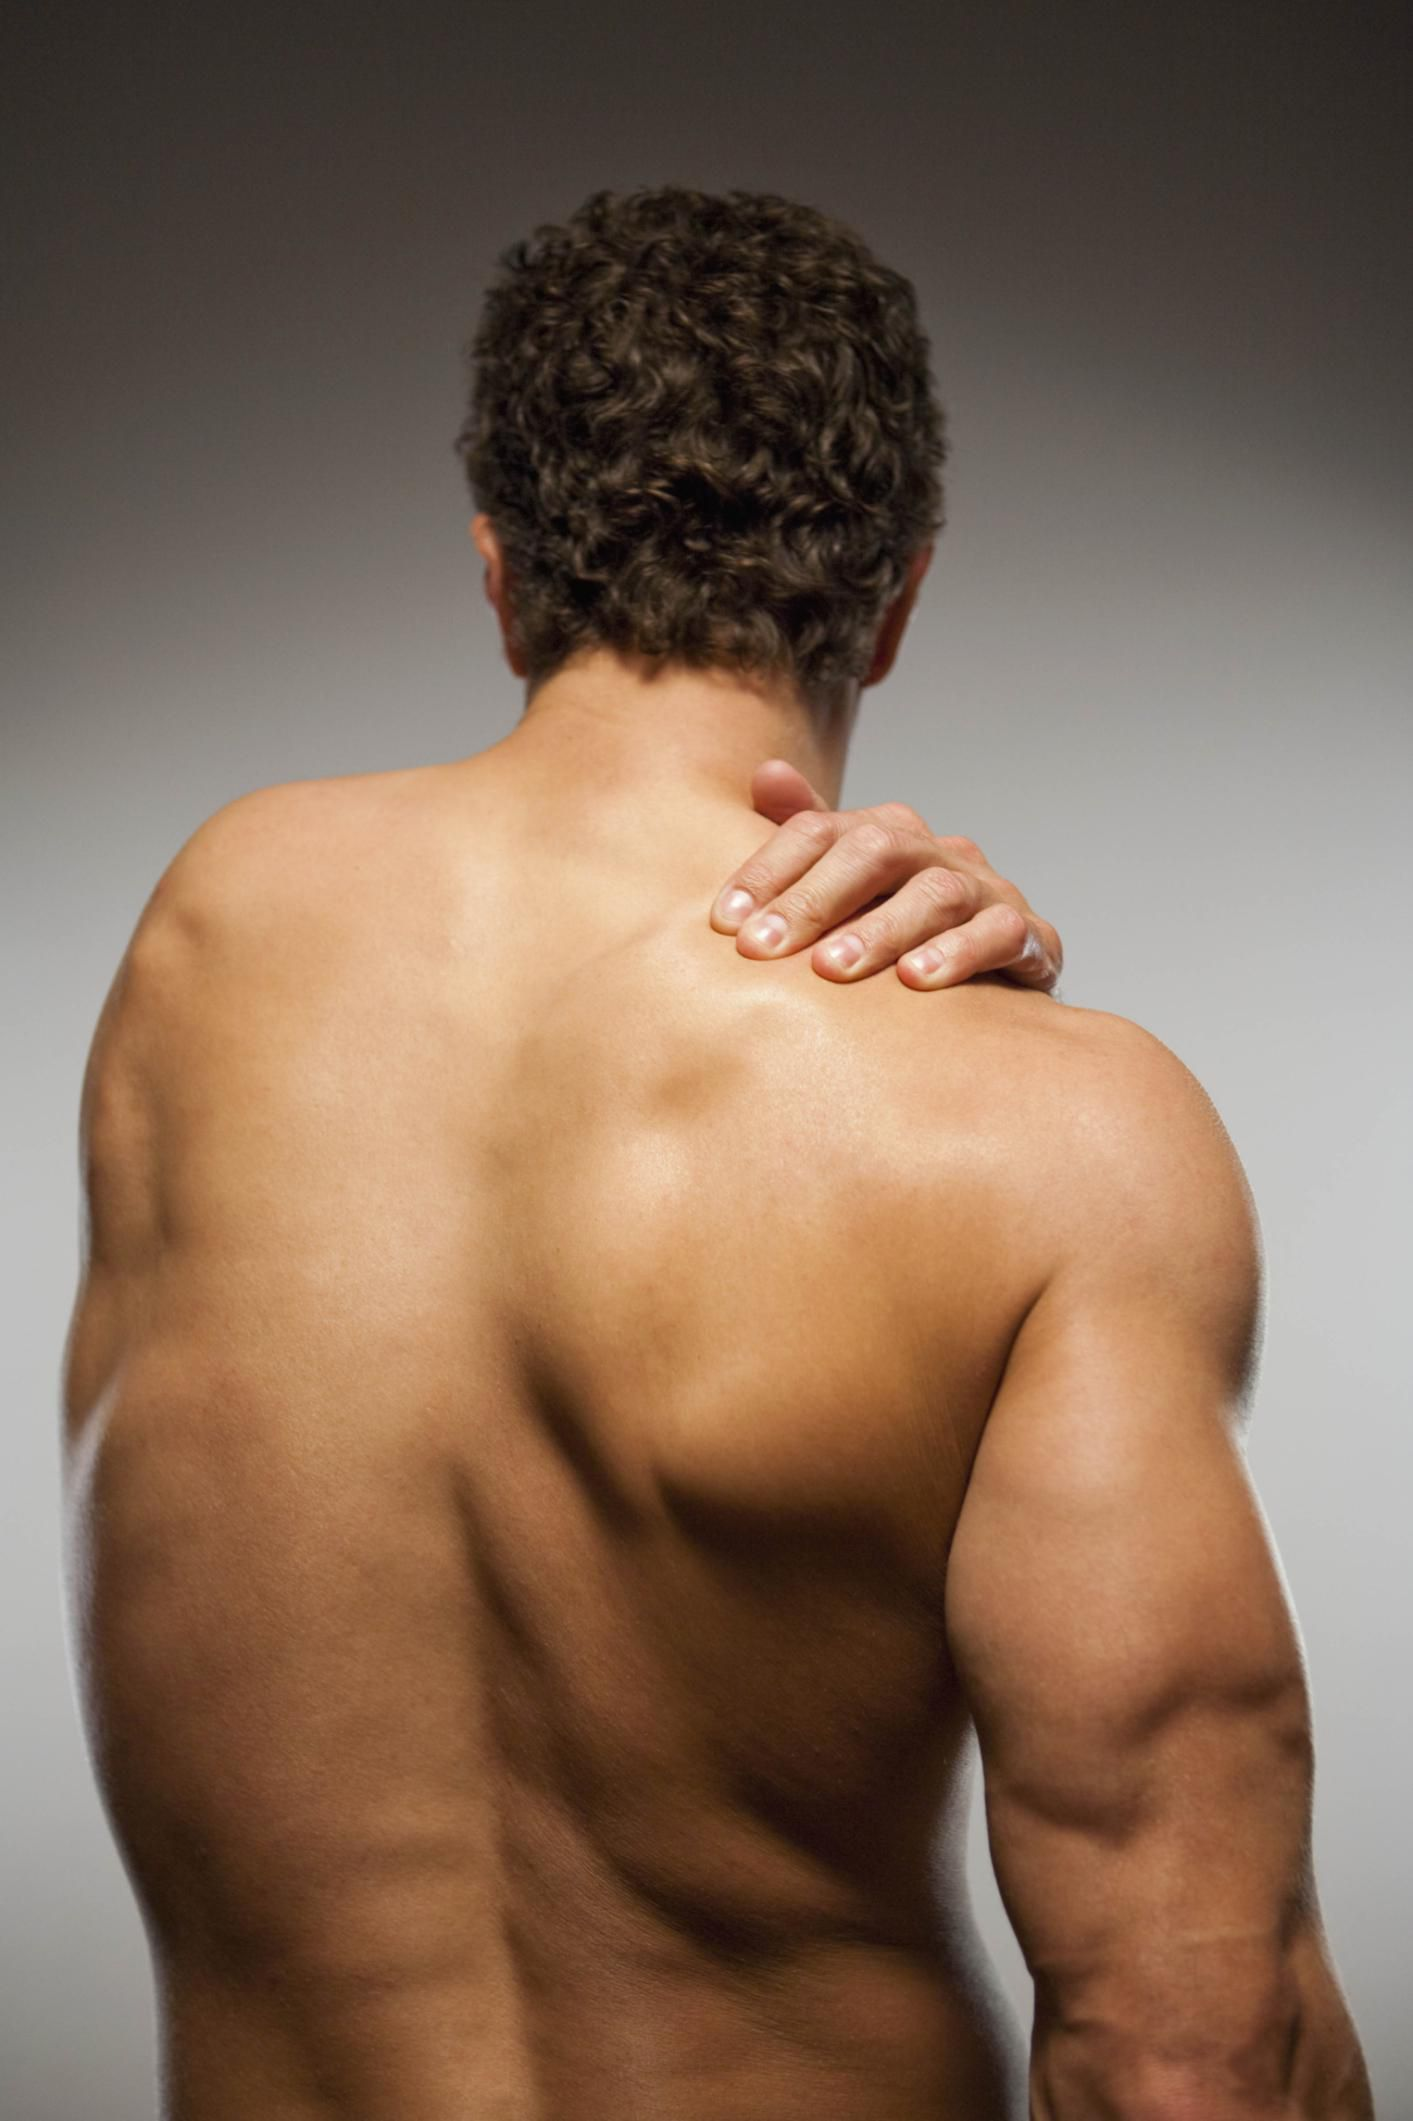 Causes of Muscle Pain - An Overview